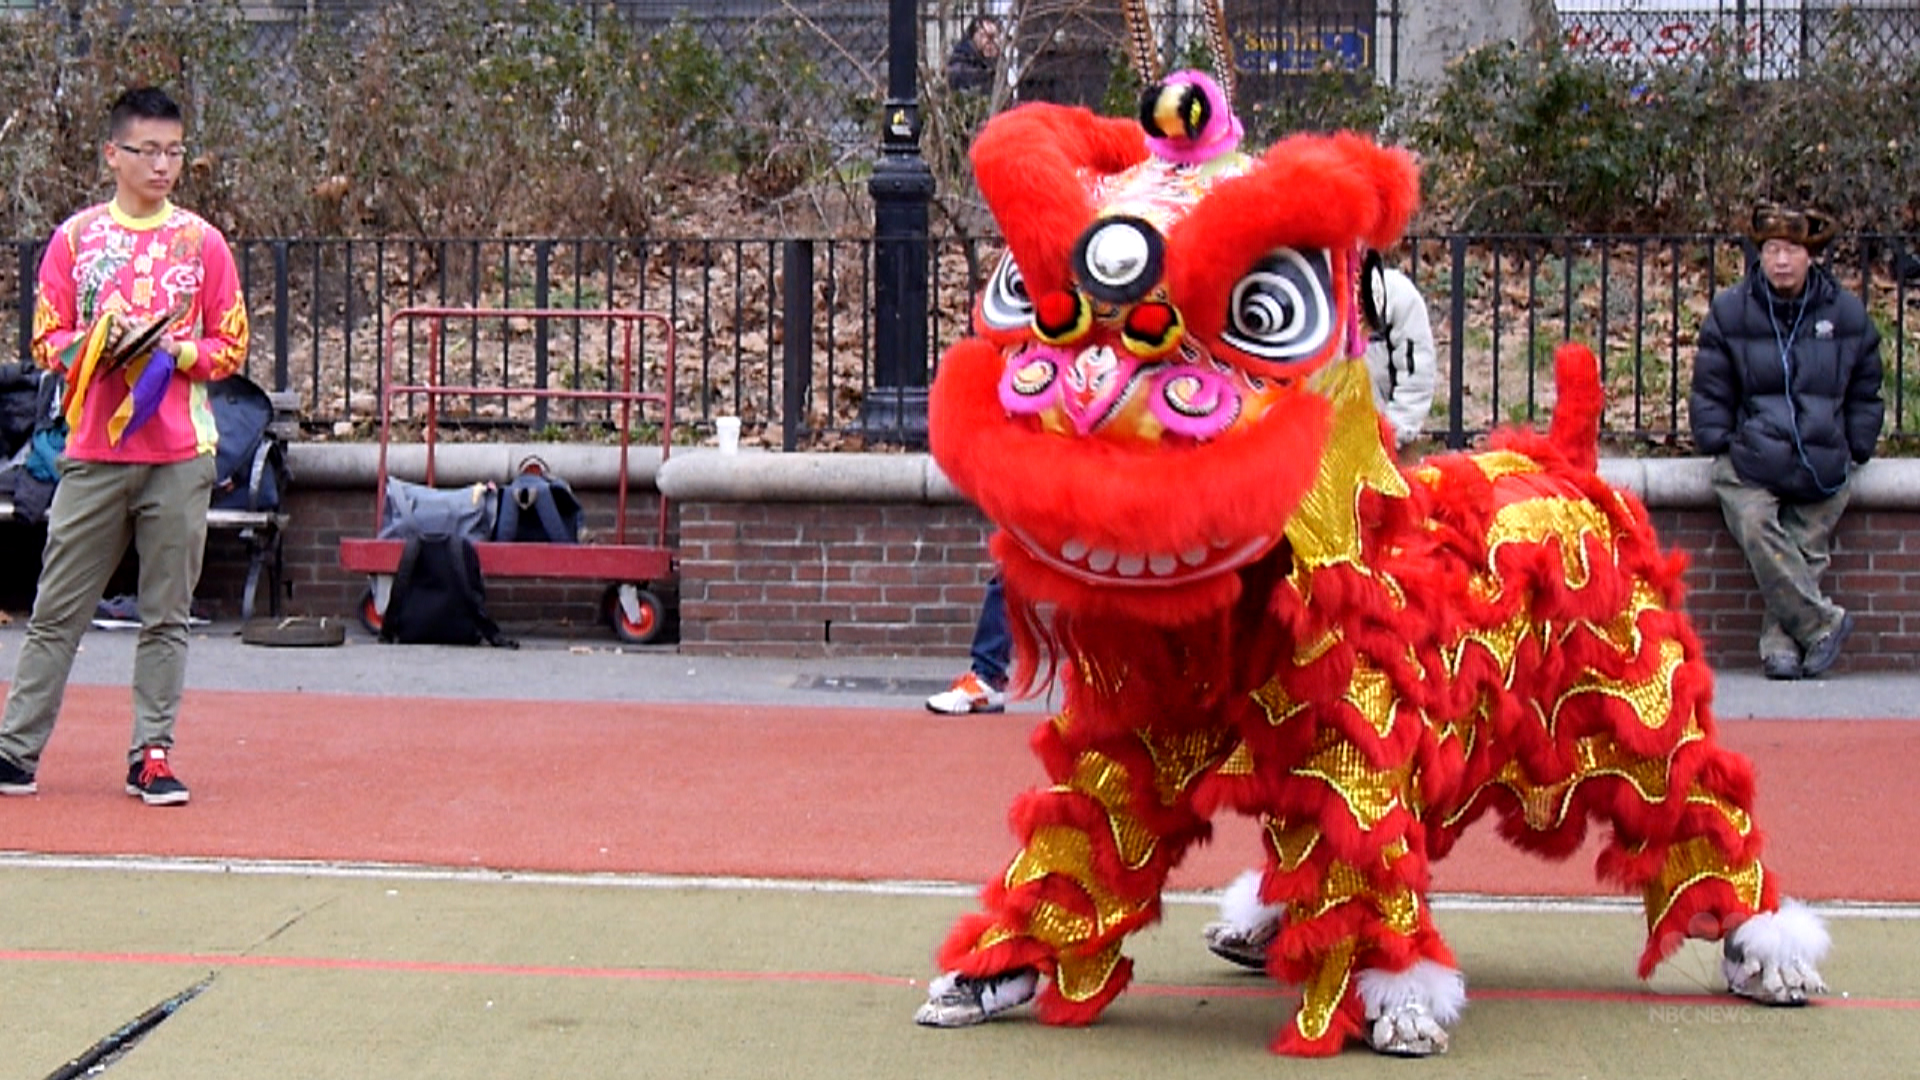 10 lunar new year facts to help answer your pressing questions